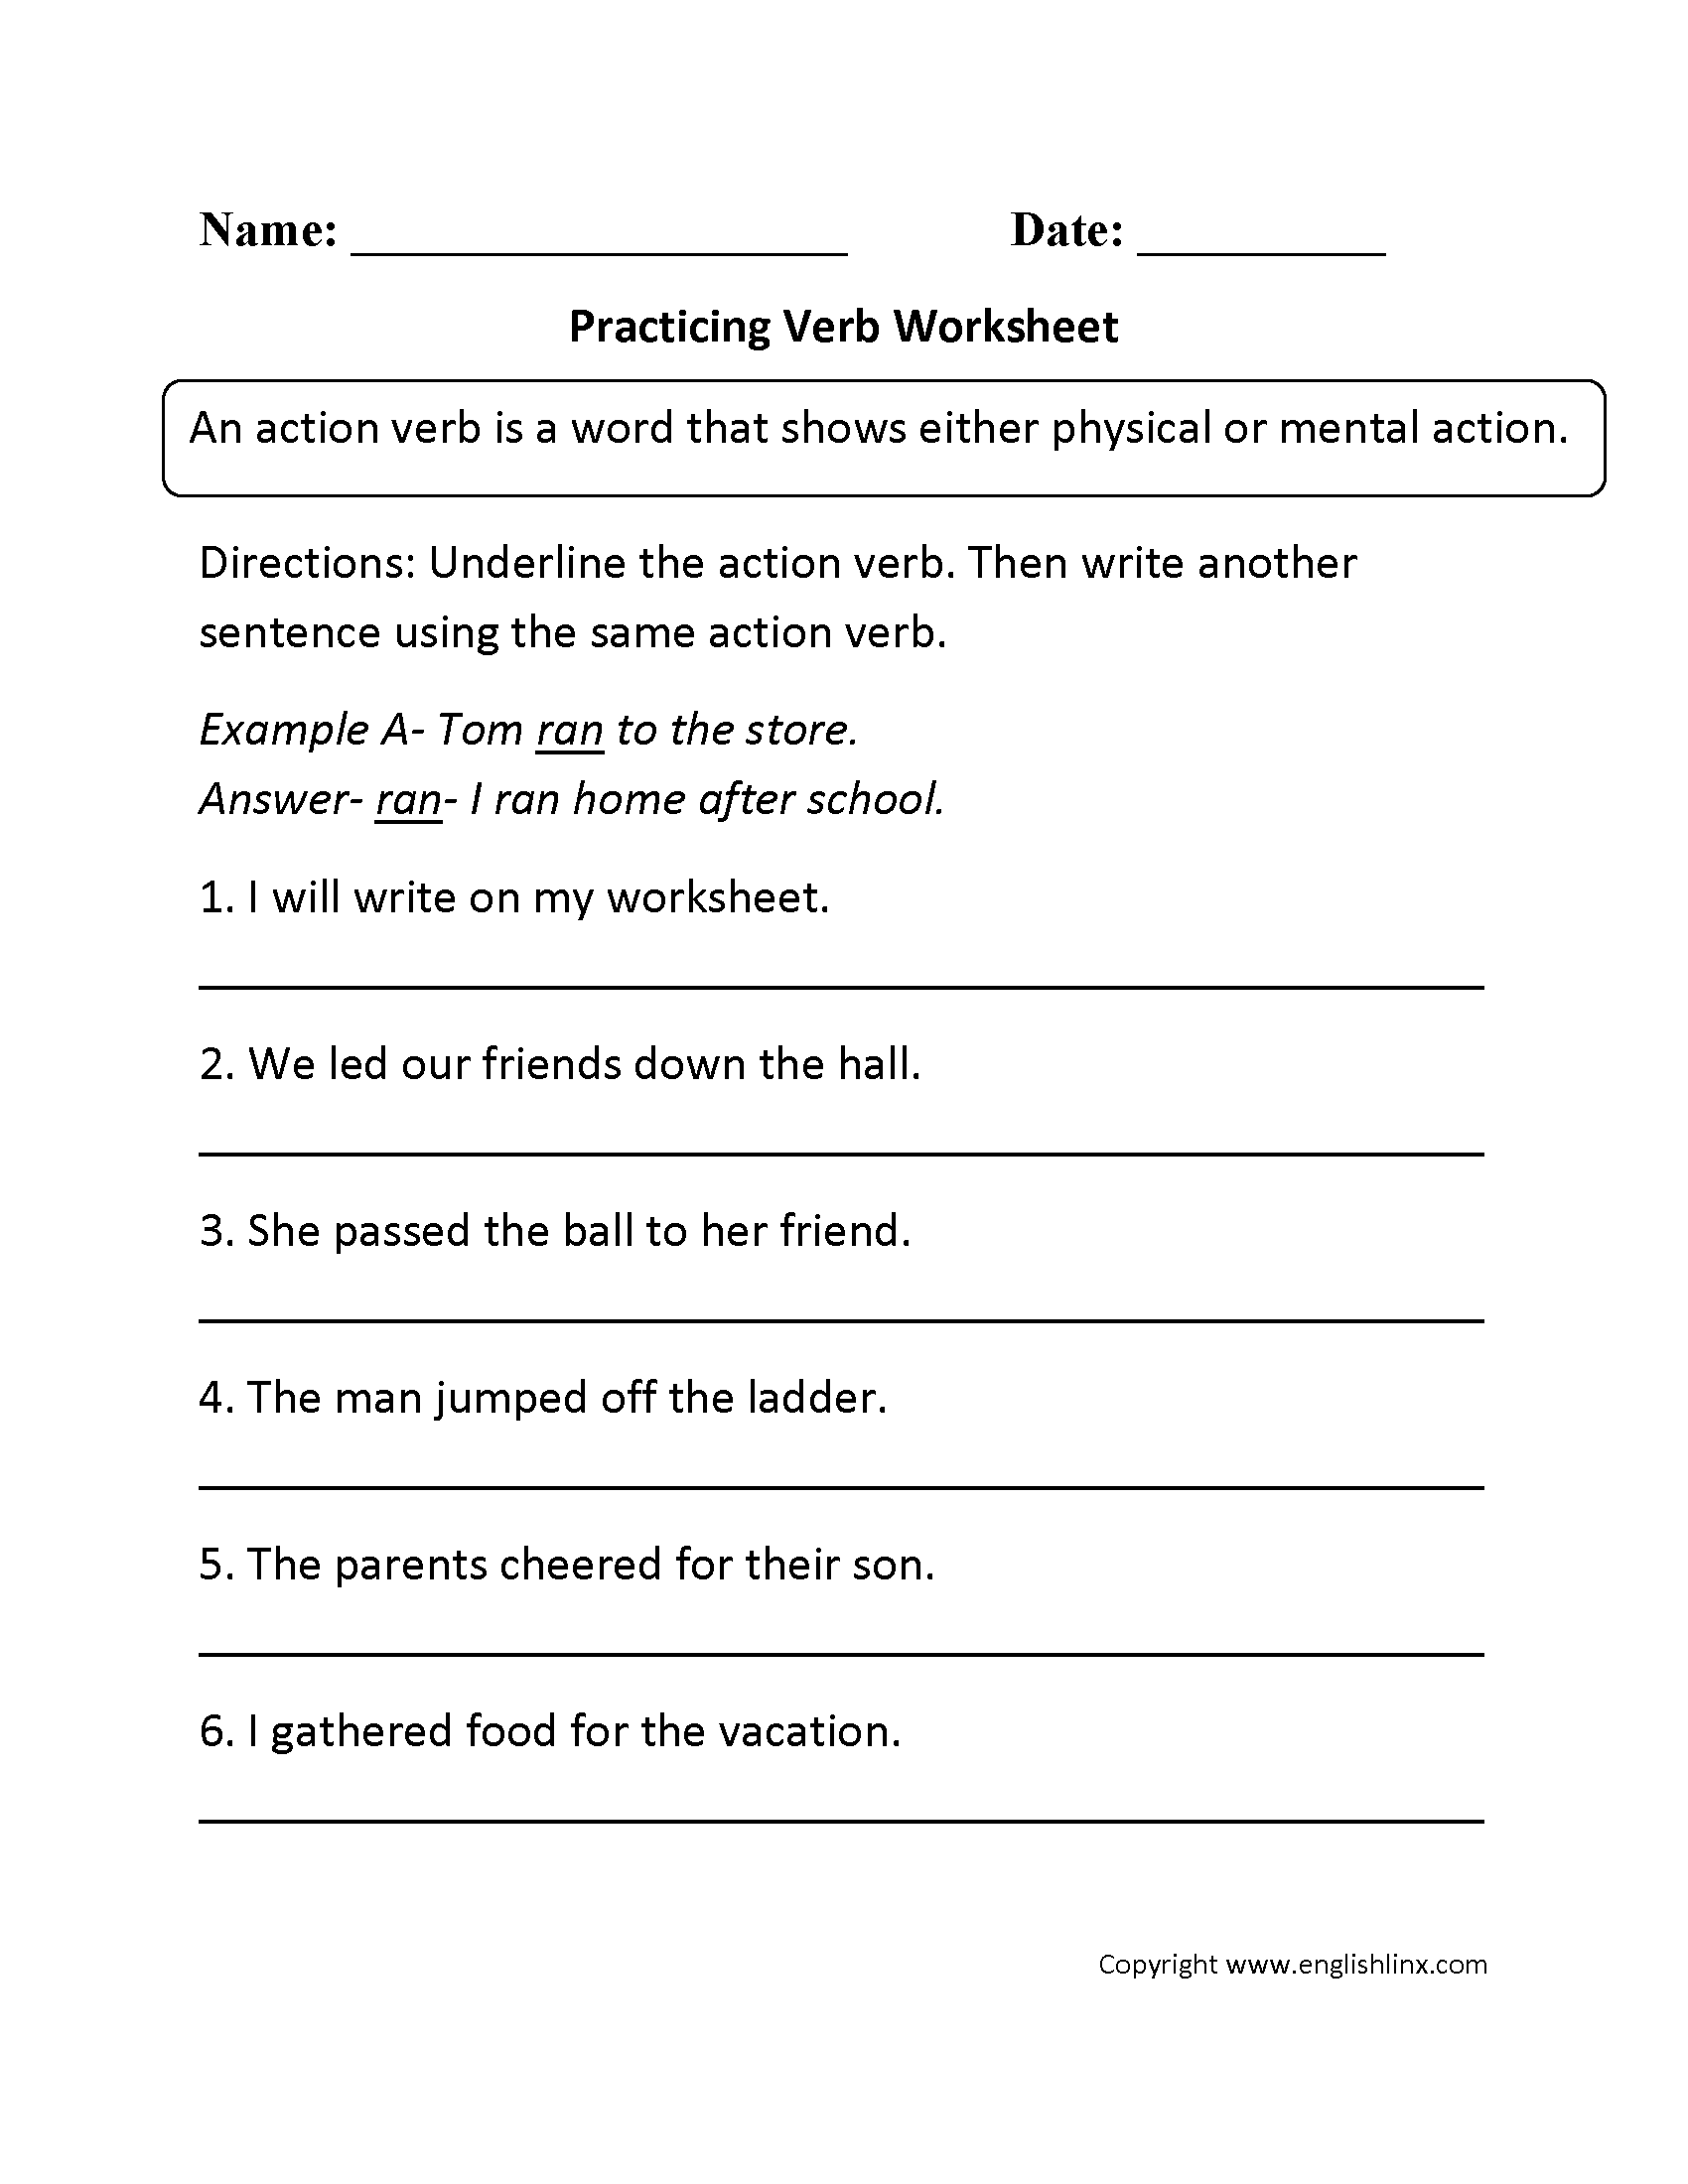 Practicing Verb Worksheet